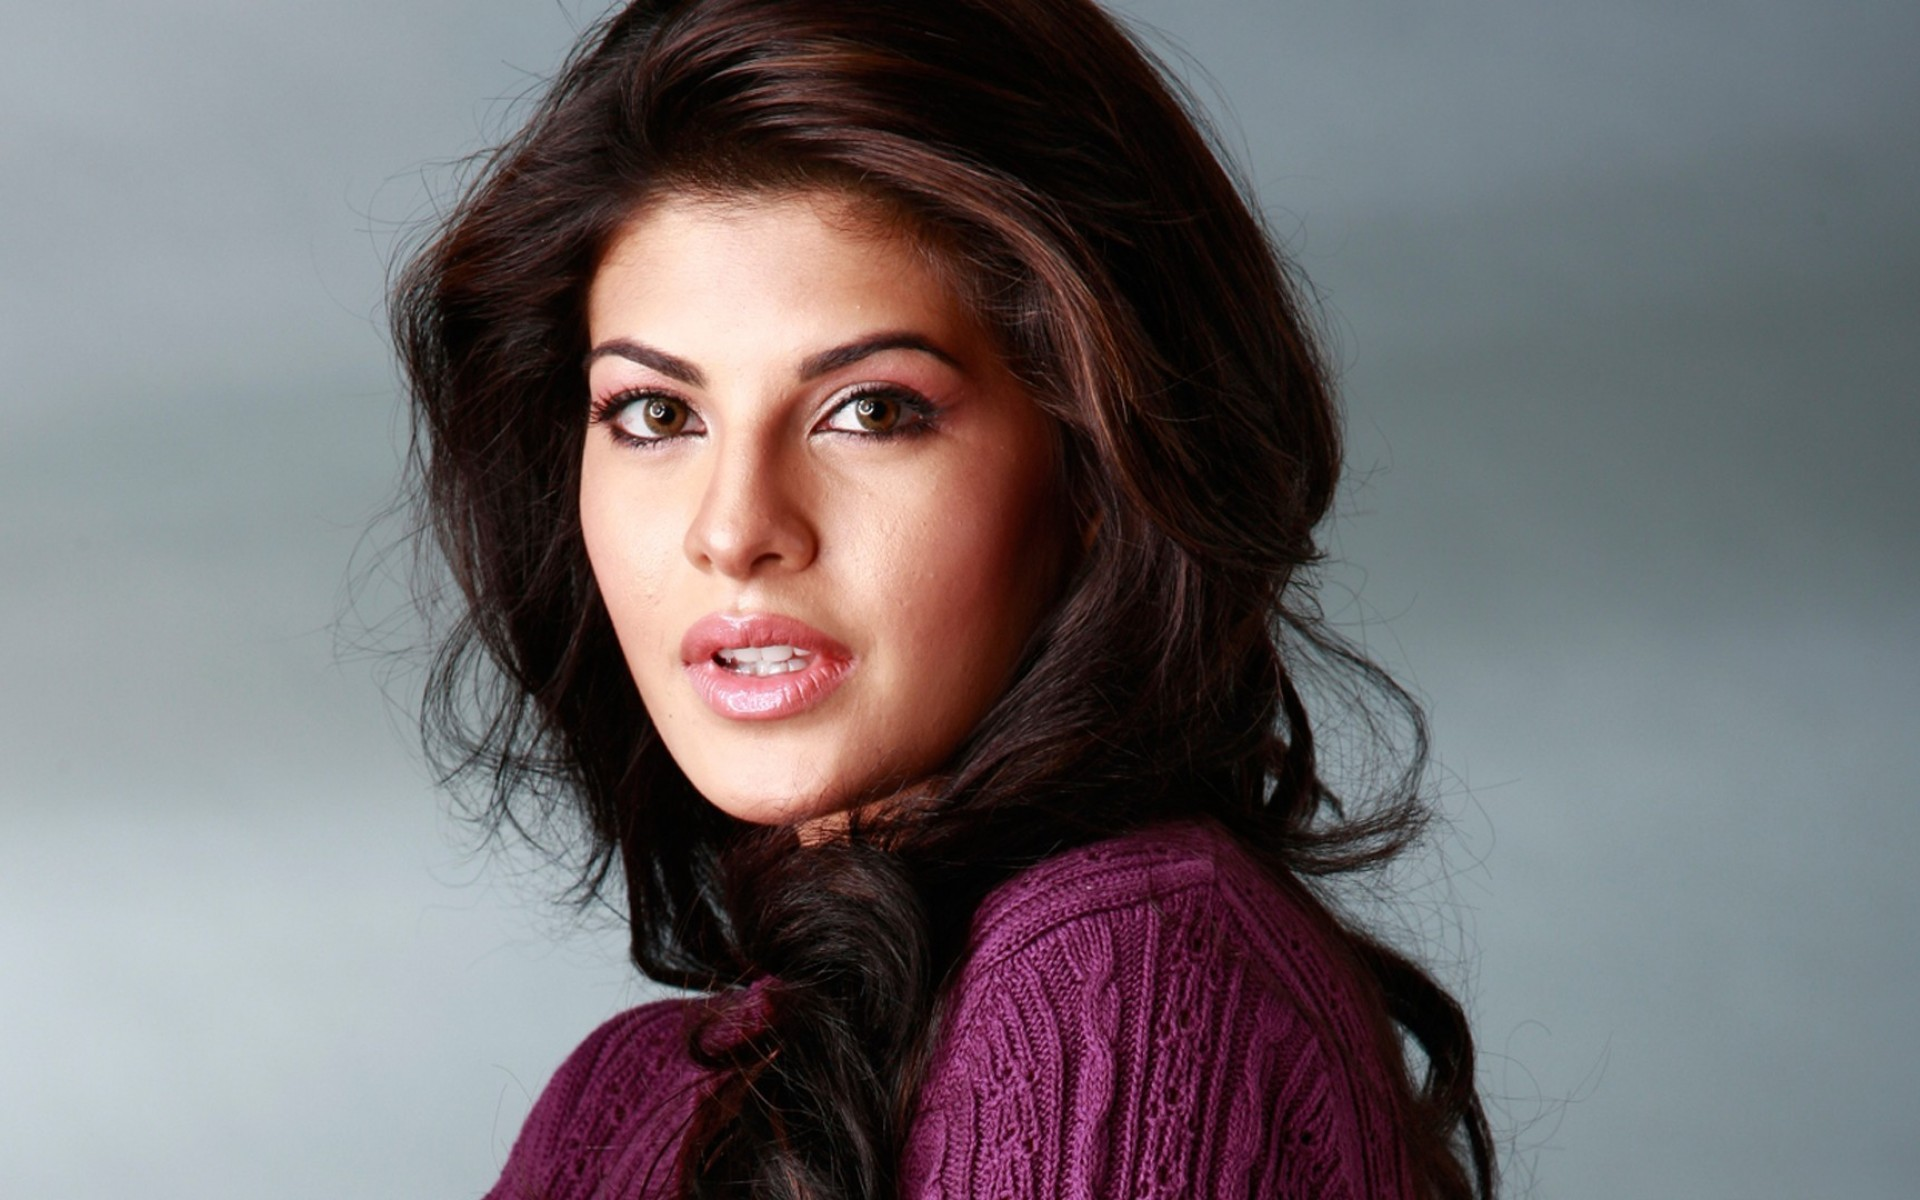 jacqueline fernandez hd wallpaper | hd latest wallpapers